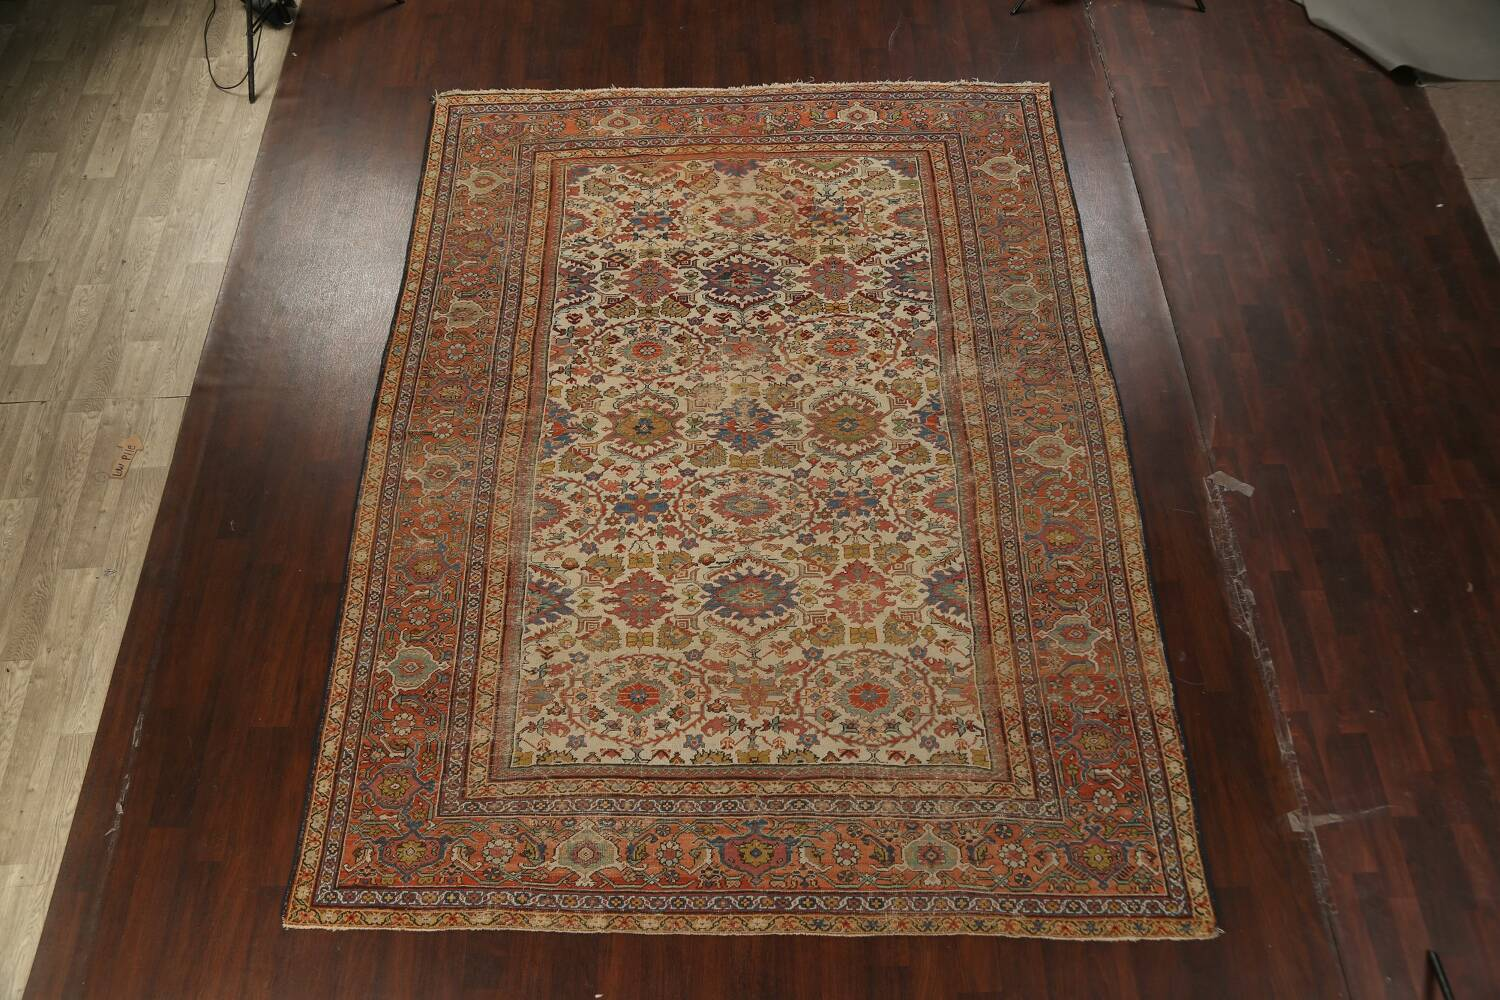 Pre-1900 Antique Vegetable Dye Sultanabad Persian Area Rug 9x12 image 2